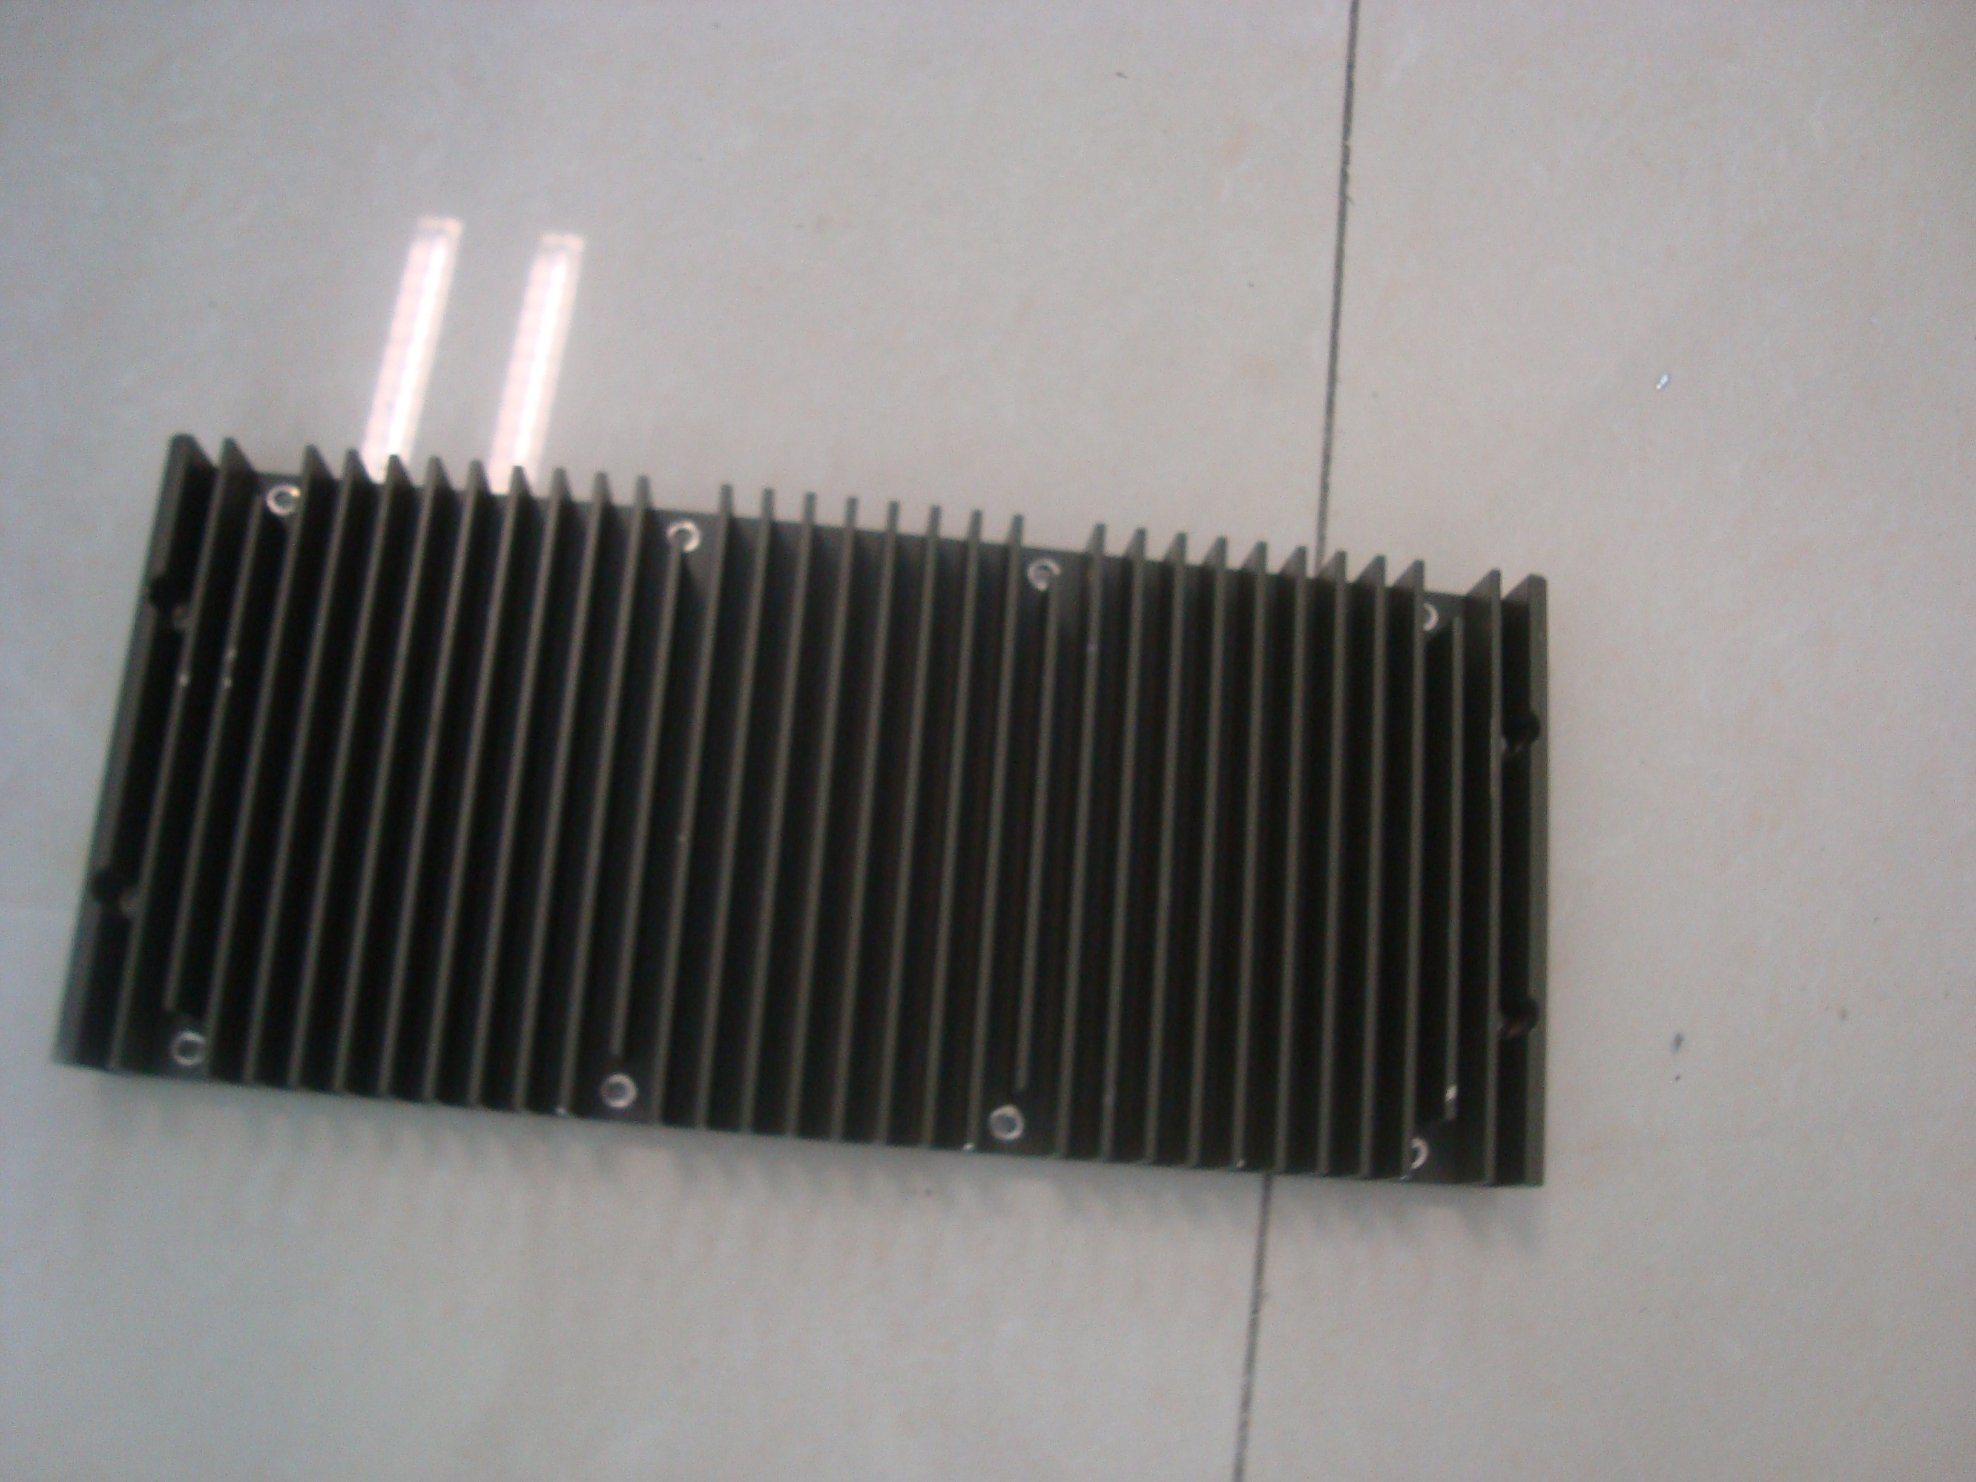 Aluminium Heat Sink for Vidio with Precise CNC Machining Jobs